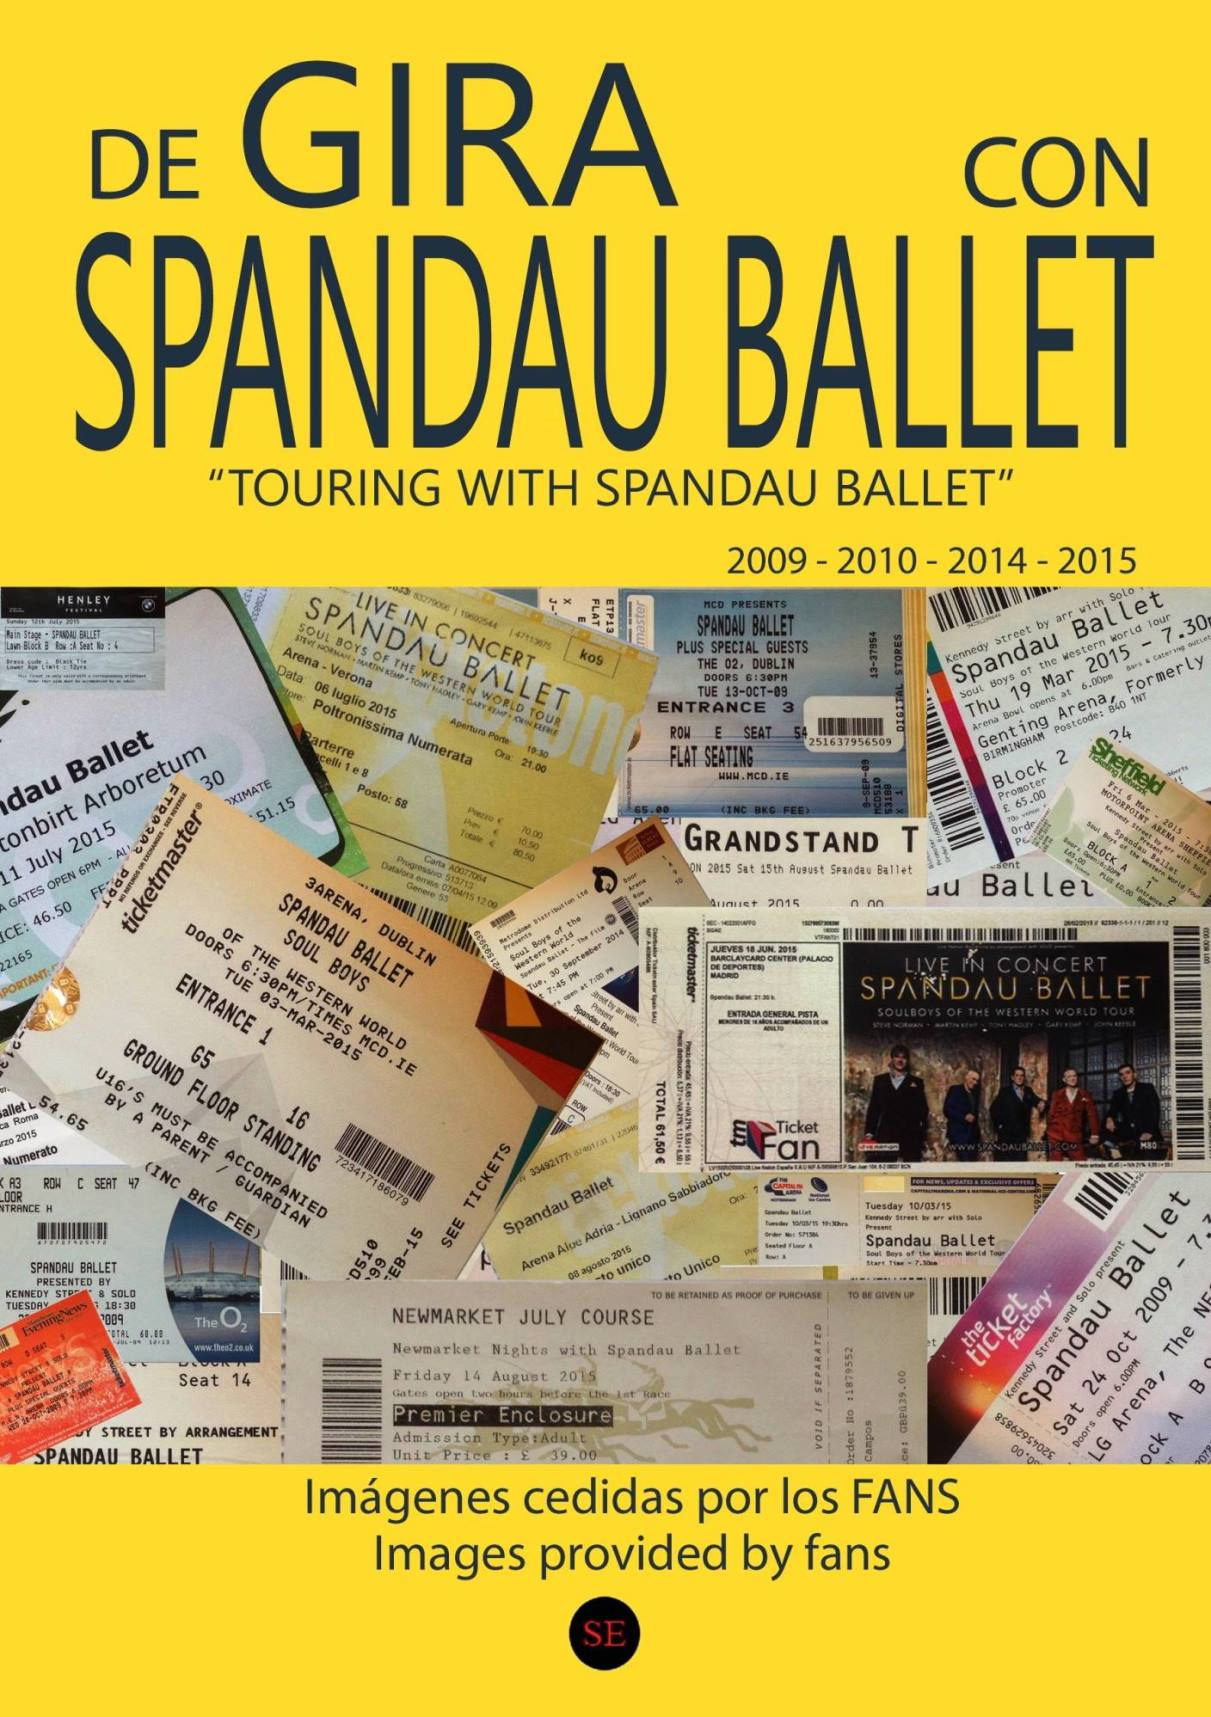 De Gira con Spandau Ballet